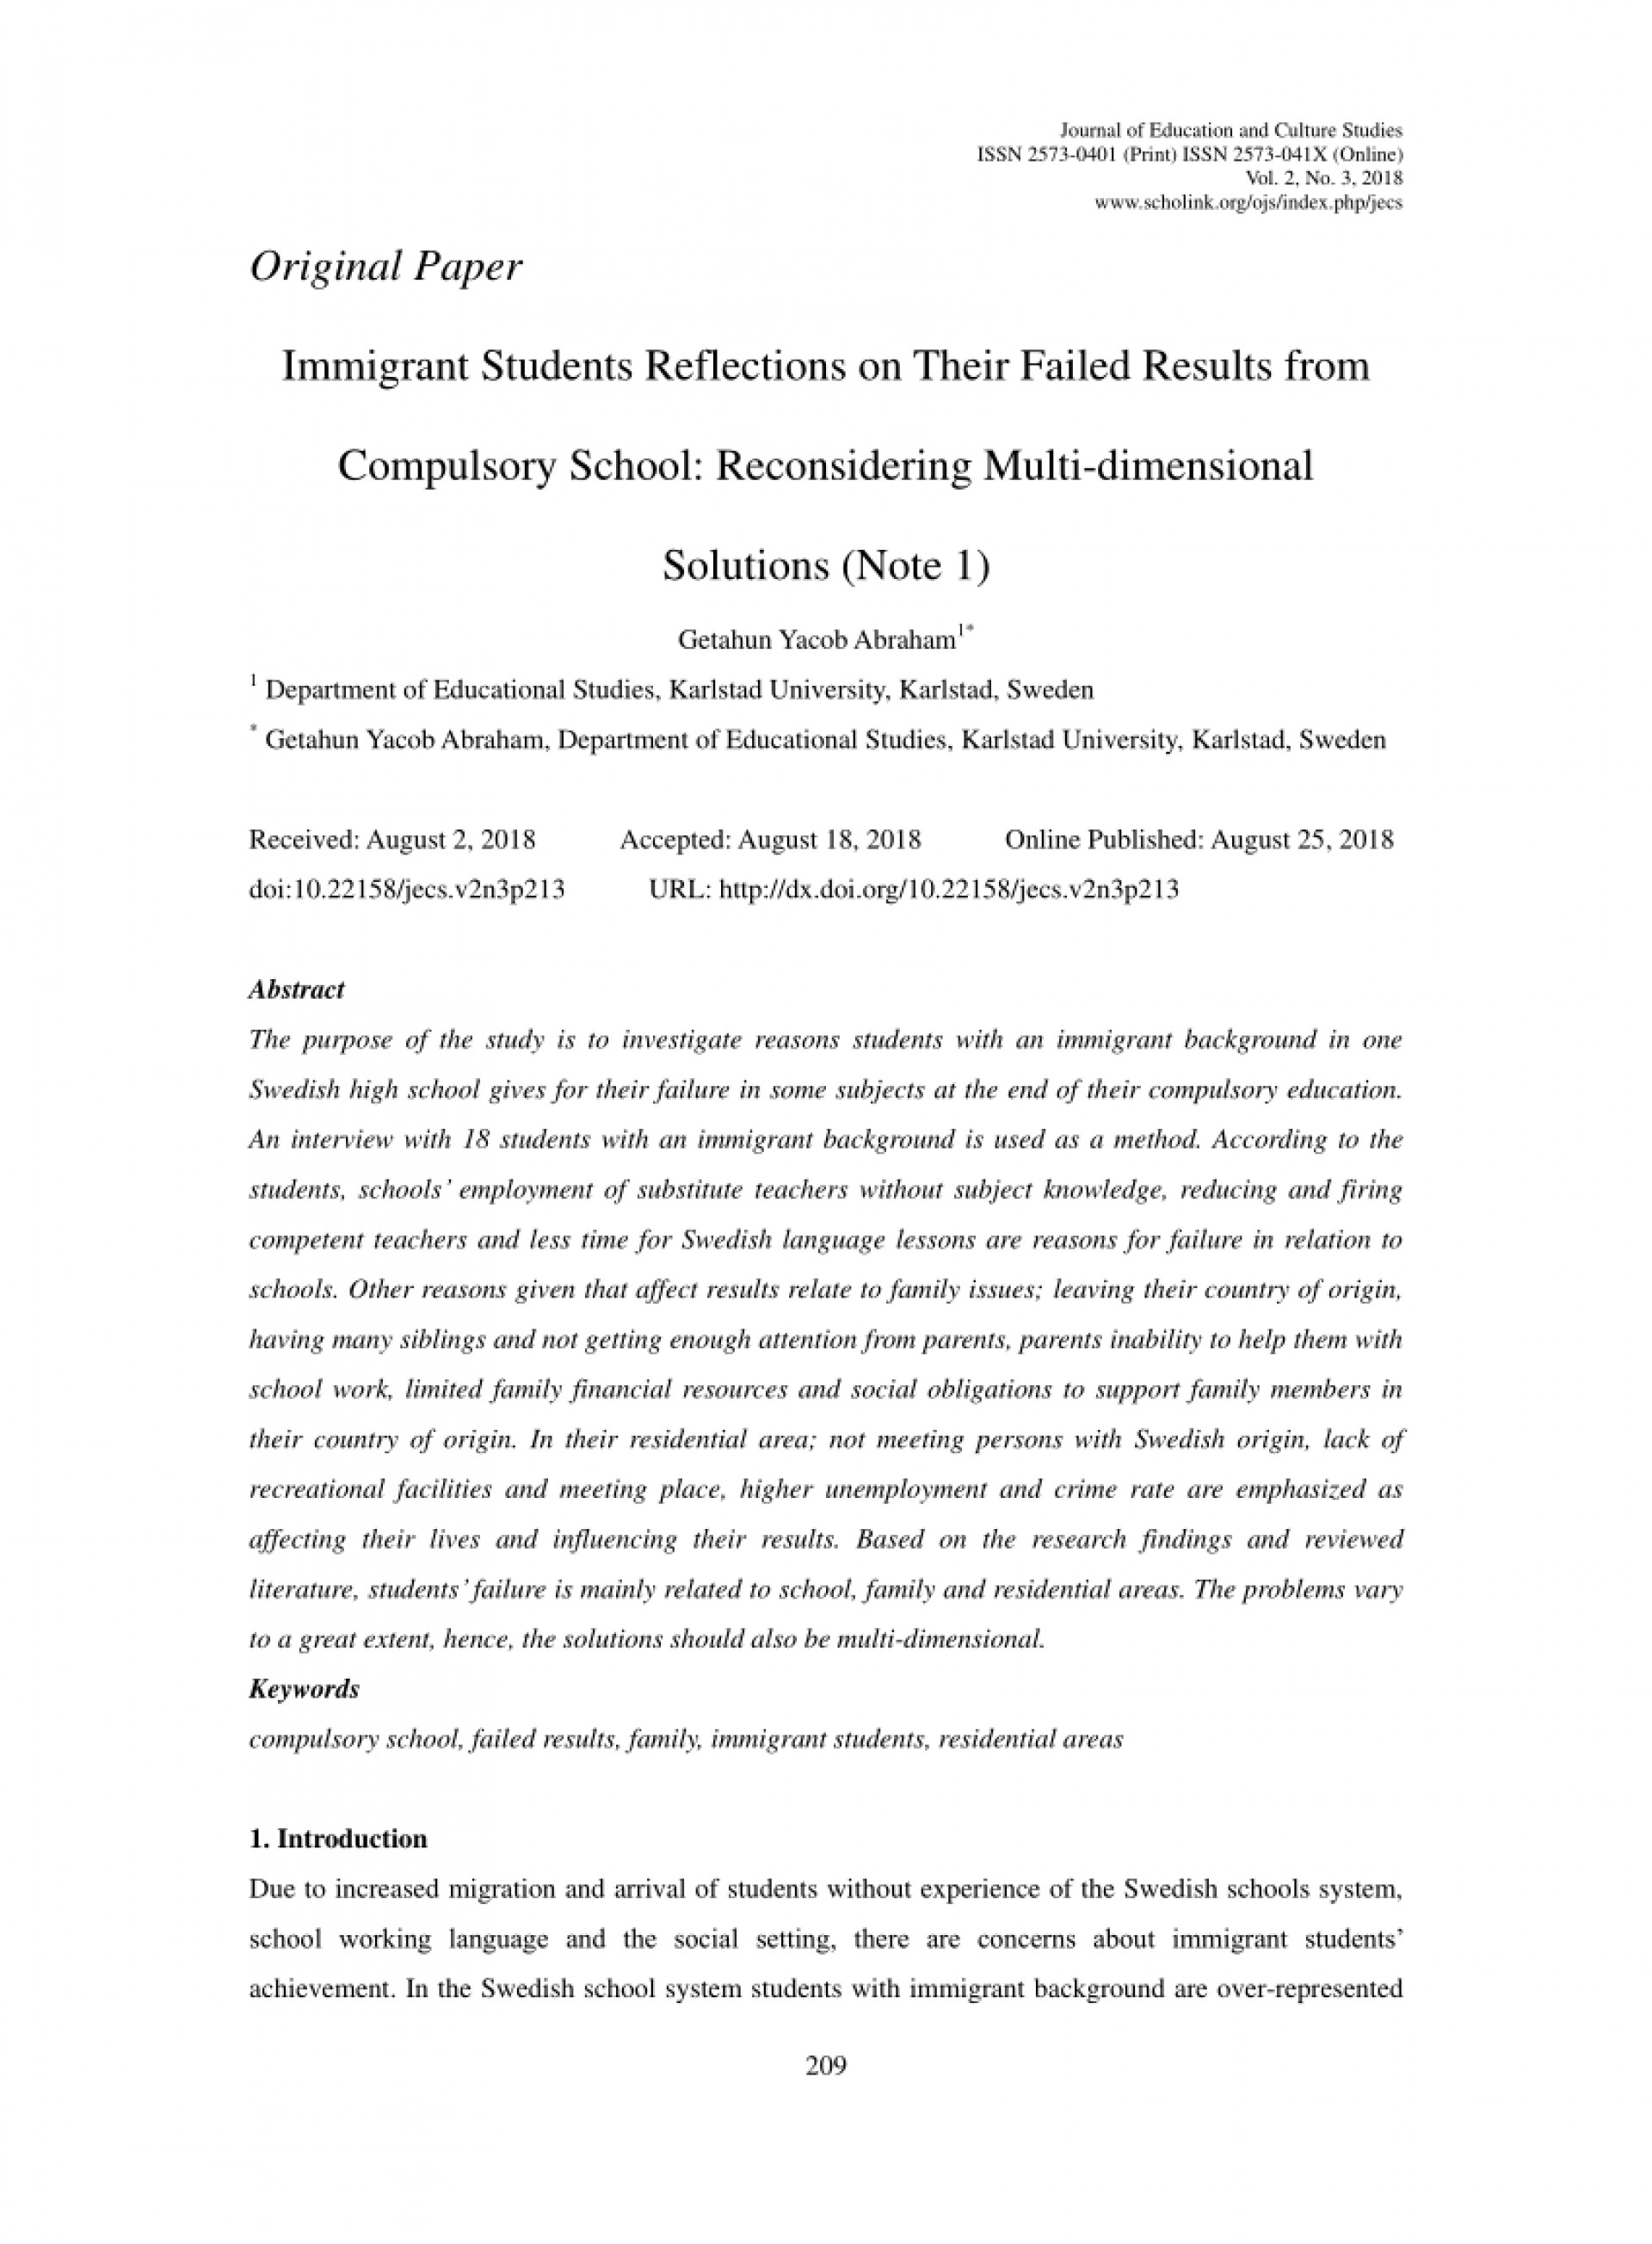 008 Immigration Research Paper Pdf Breathtaking 1920